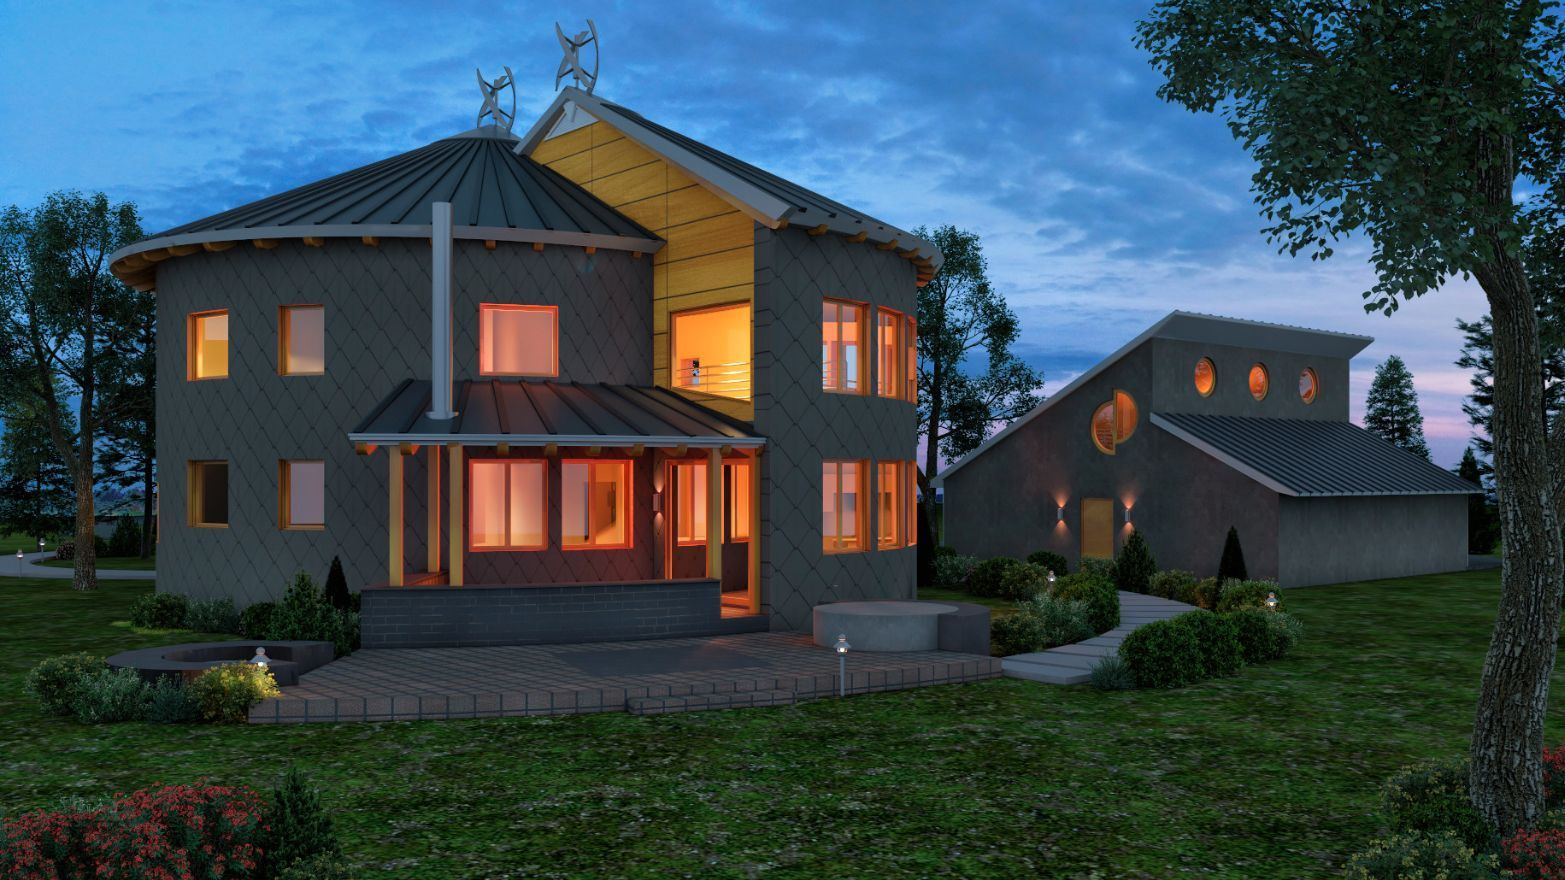 Chicago winter without a furnace or gas bill: Passive houses make it possible and are slowly catching on